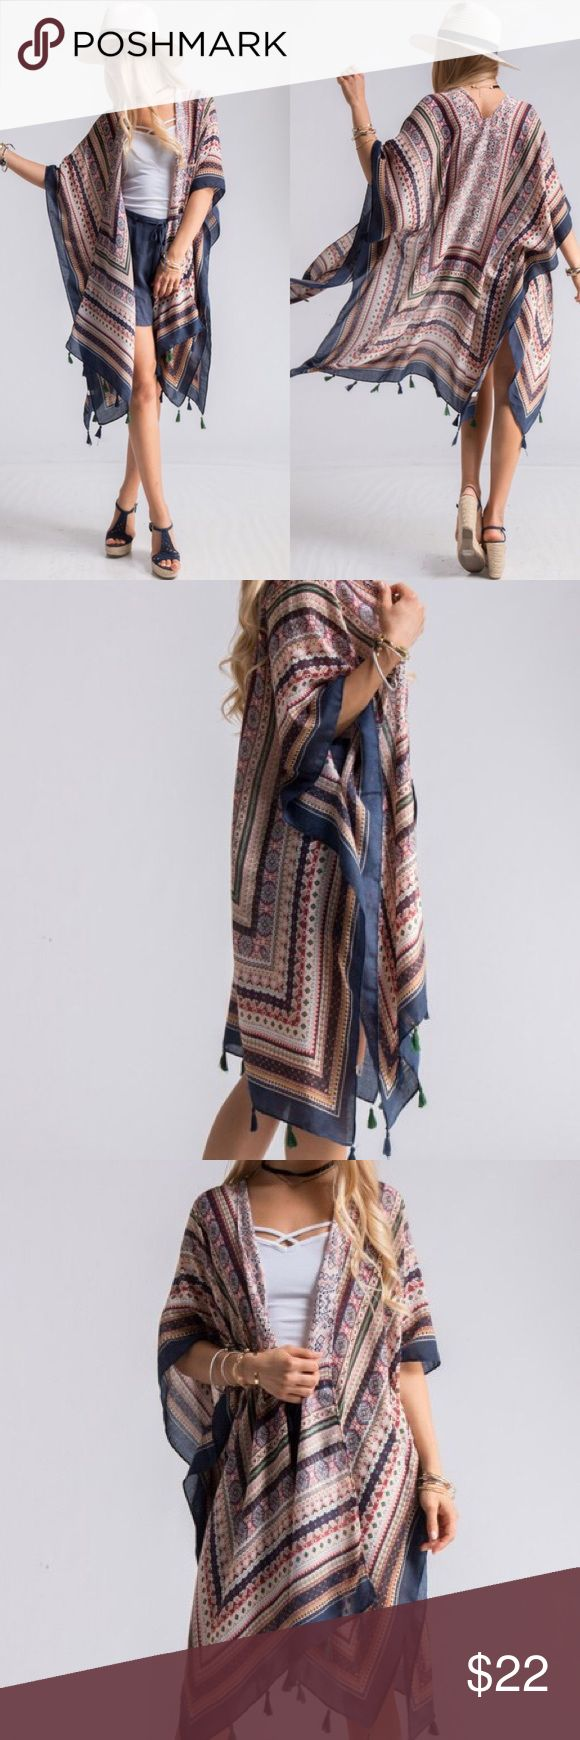 """🆕 Listing: Shrugs Perfect For Spring & Summer🙌🏽 AZTEC SCARF PRINT SHRUGS WITH TASSEL TRIM DETAIL AND ARM HOLES. 💕 100%POLYESTER. MADE IN CHINA**38"""" X 71"""" Accessories Scarves & Wraps"""